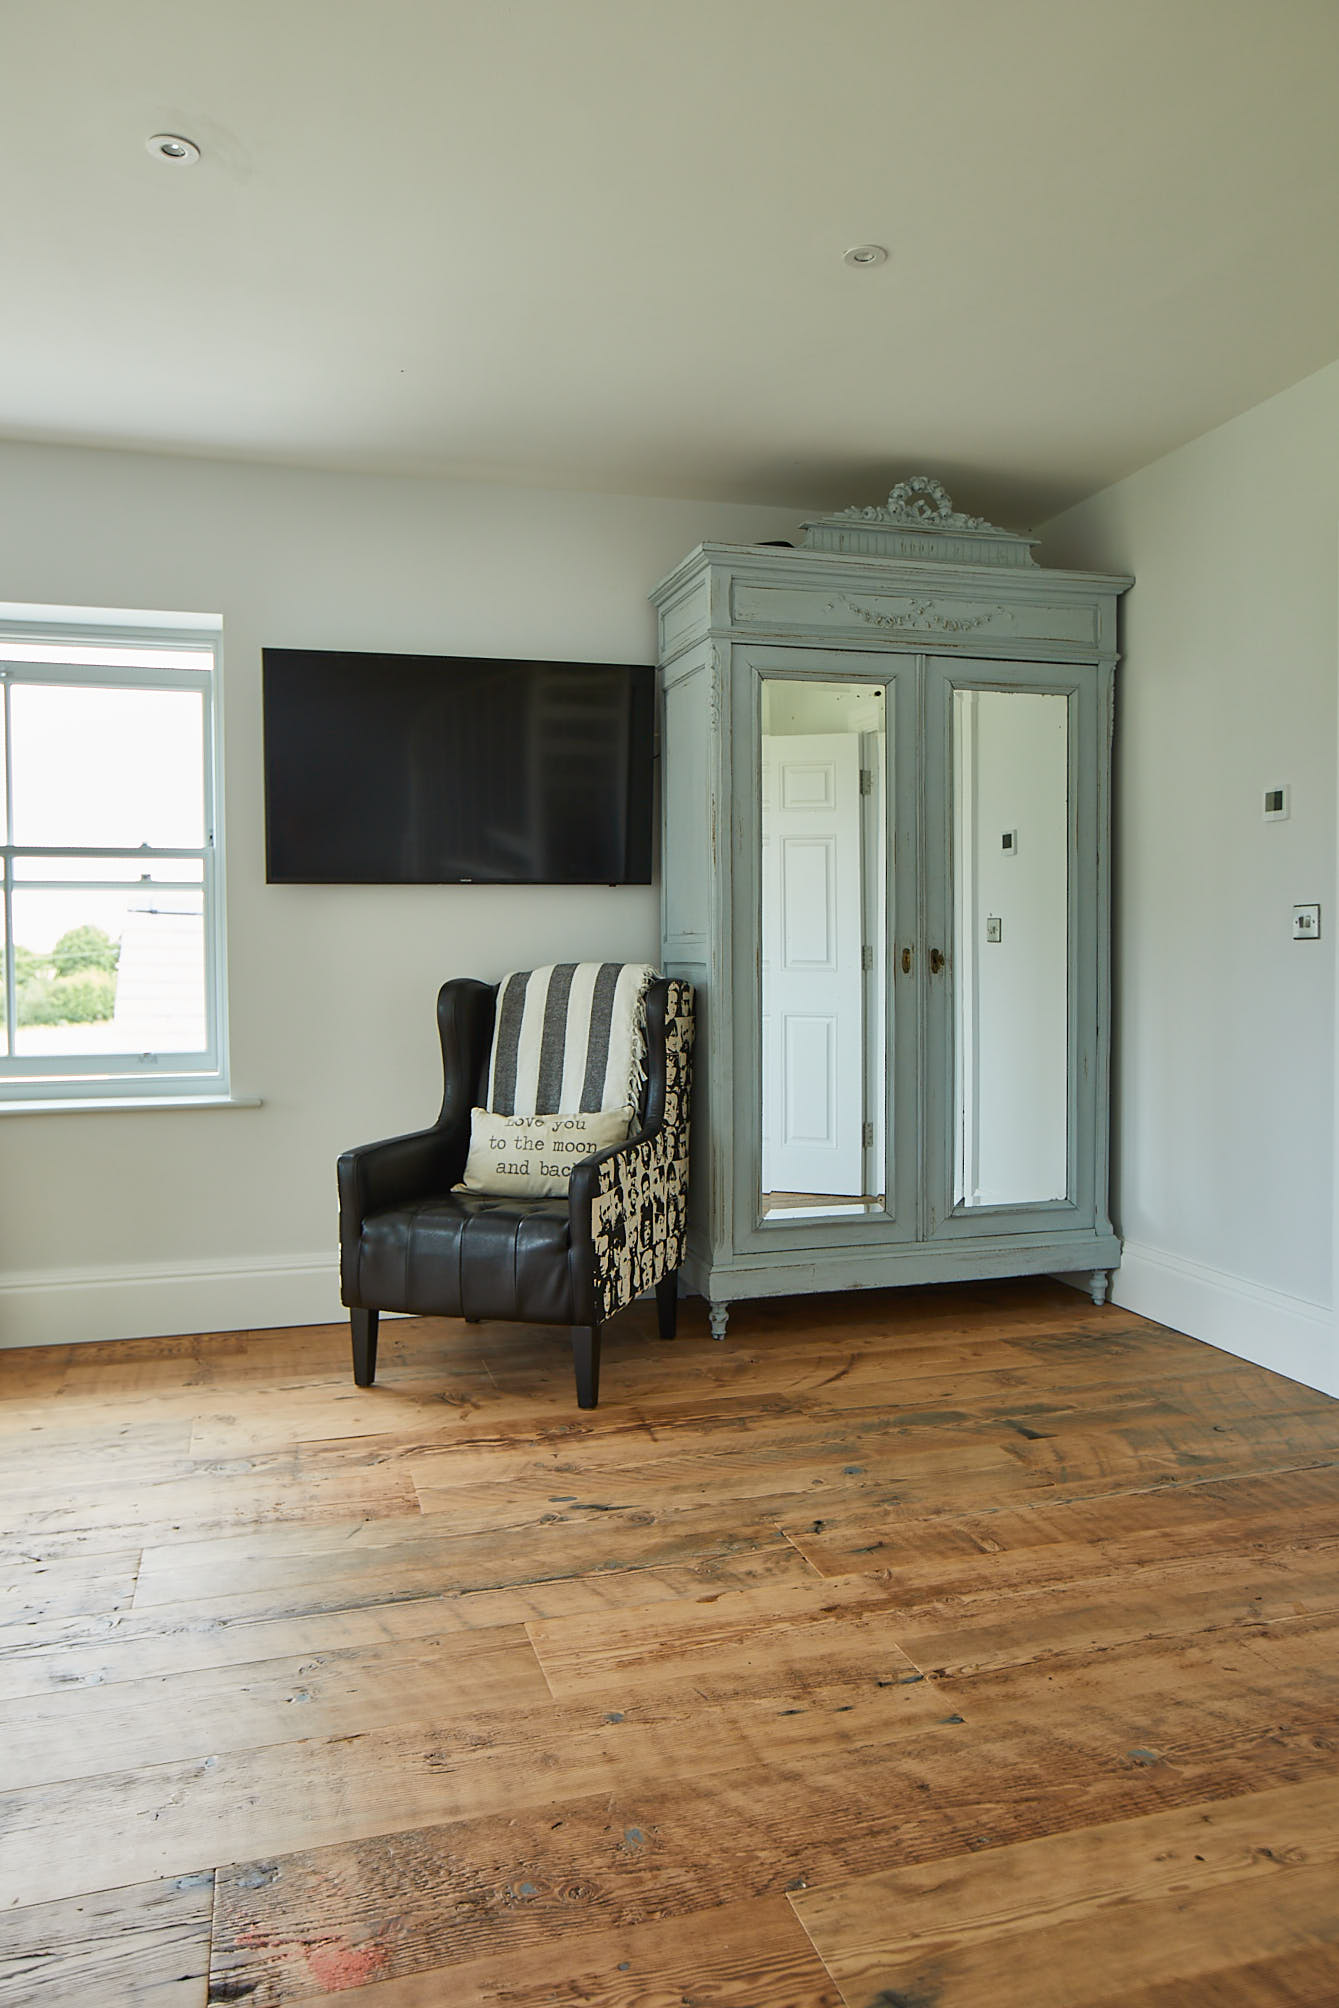 Original blue wardrobe sits on rustic flooring